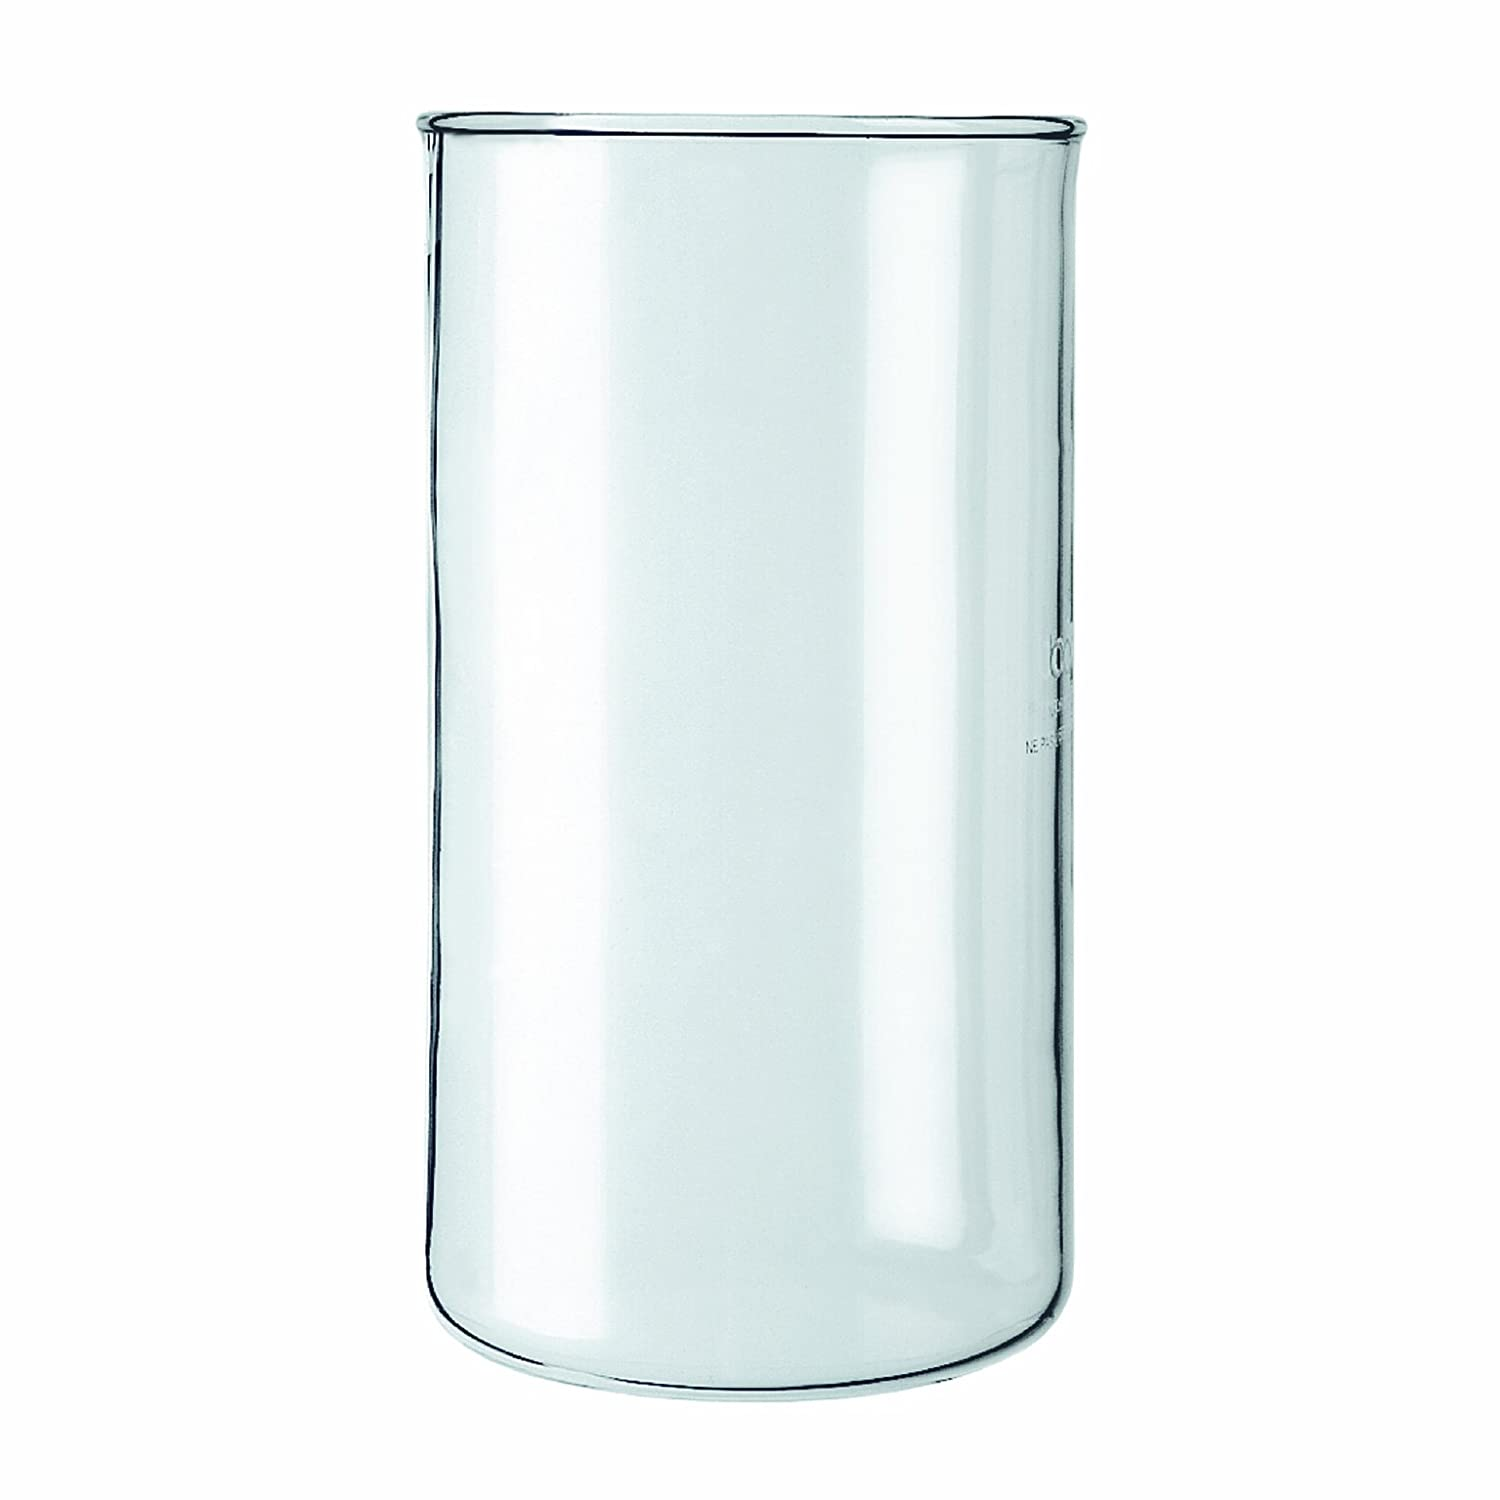 34-Ounce 01-10945-10 Bodum Spoutless Spare Glass for Locking Lid 8 Cup Coffee Presses